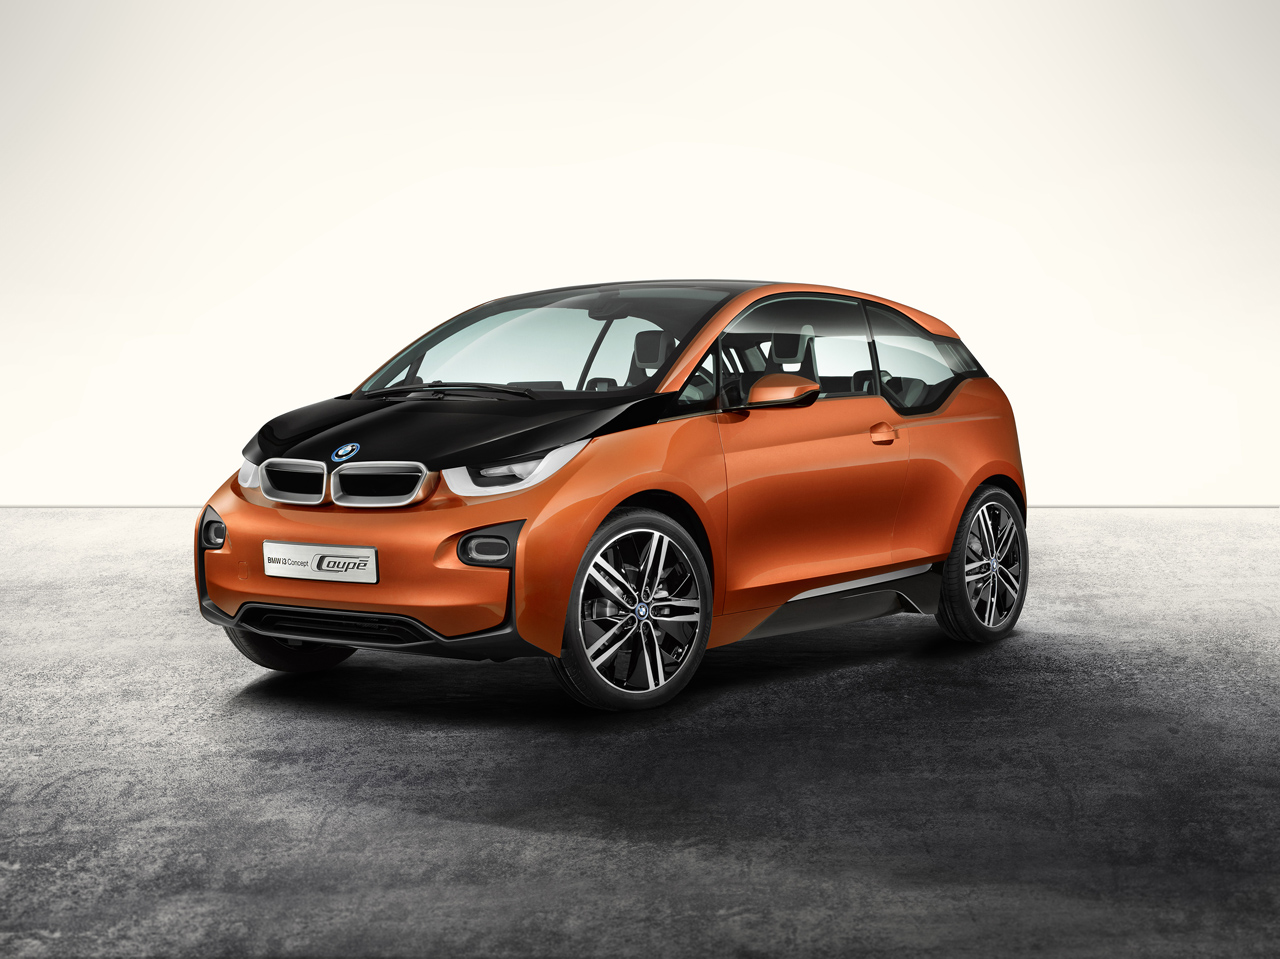 bmw i3 concept coupe revealed video electric vehicle news. Black Bedroom Furniture Sets. Home Design Ideas